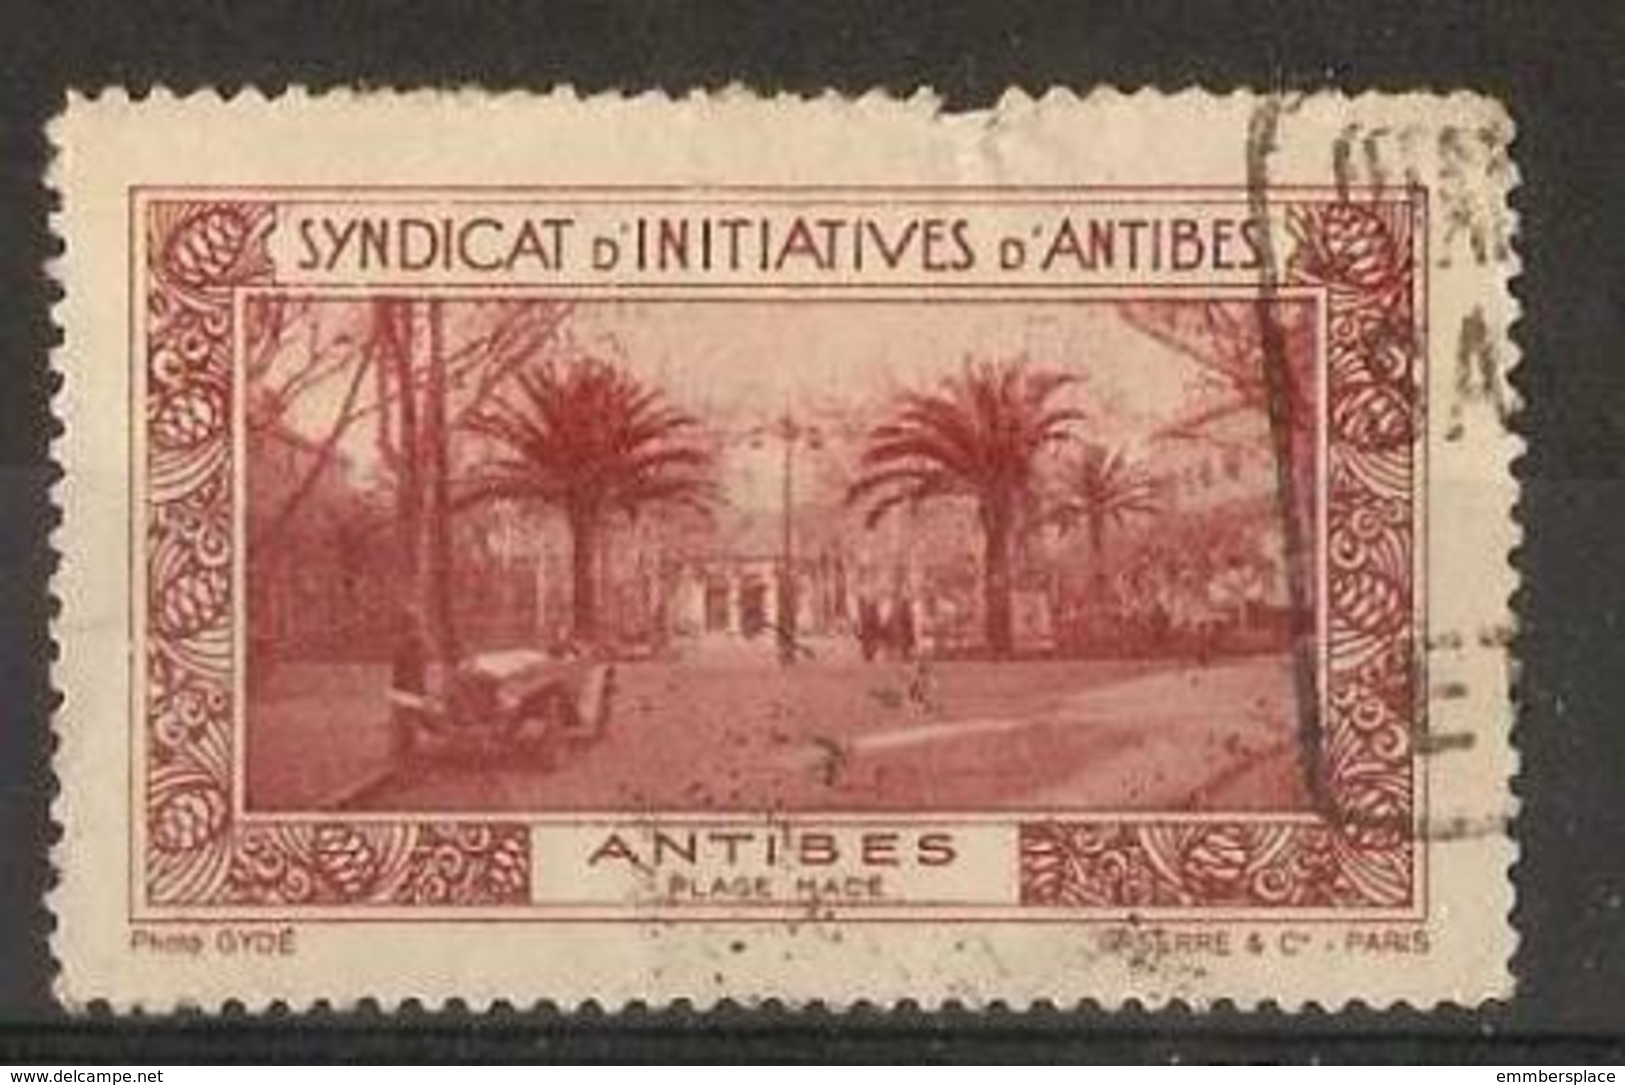 France Poster Stamp - Tourist Publicity For Antibes - Commemorative Labels